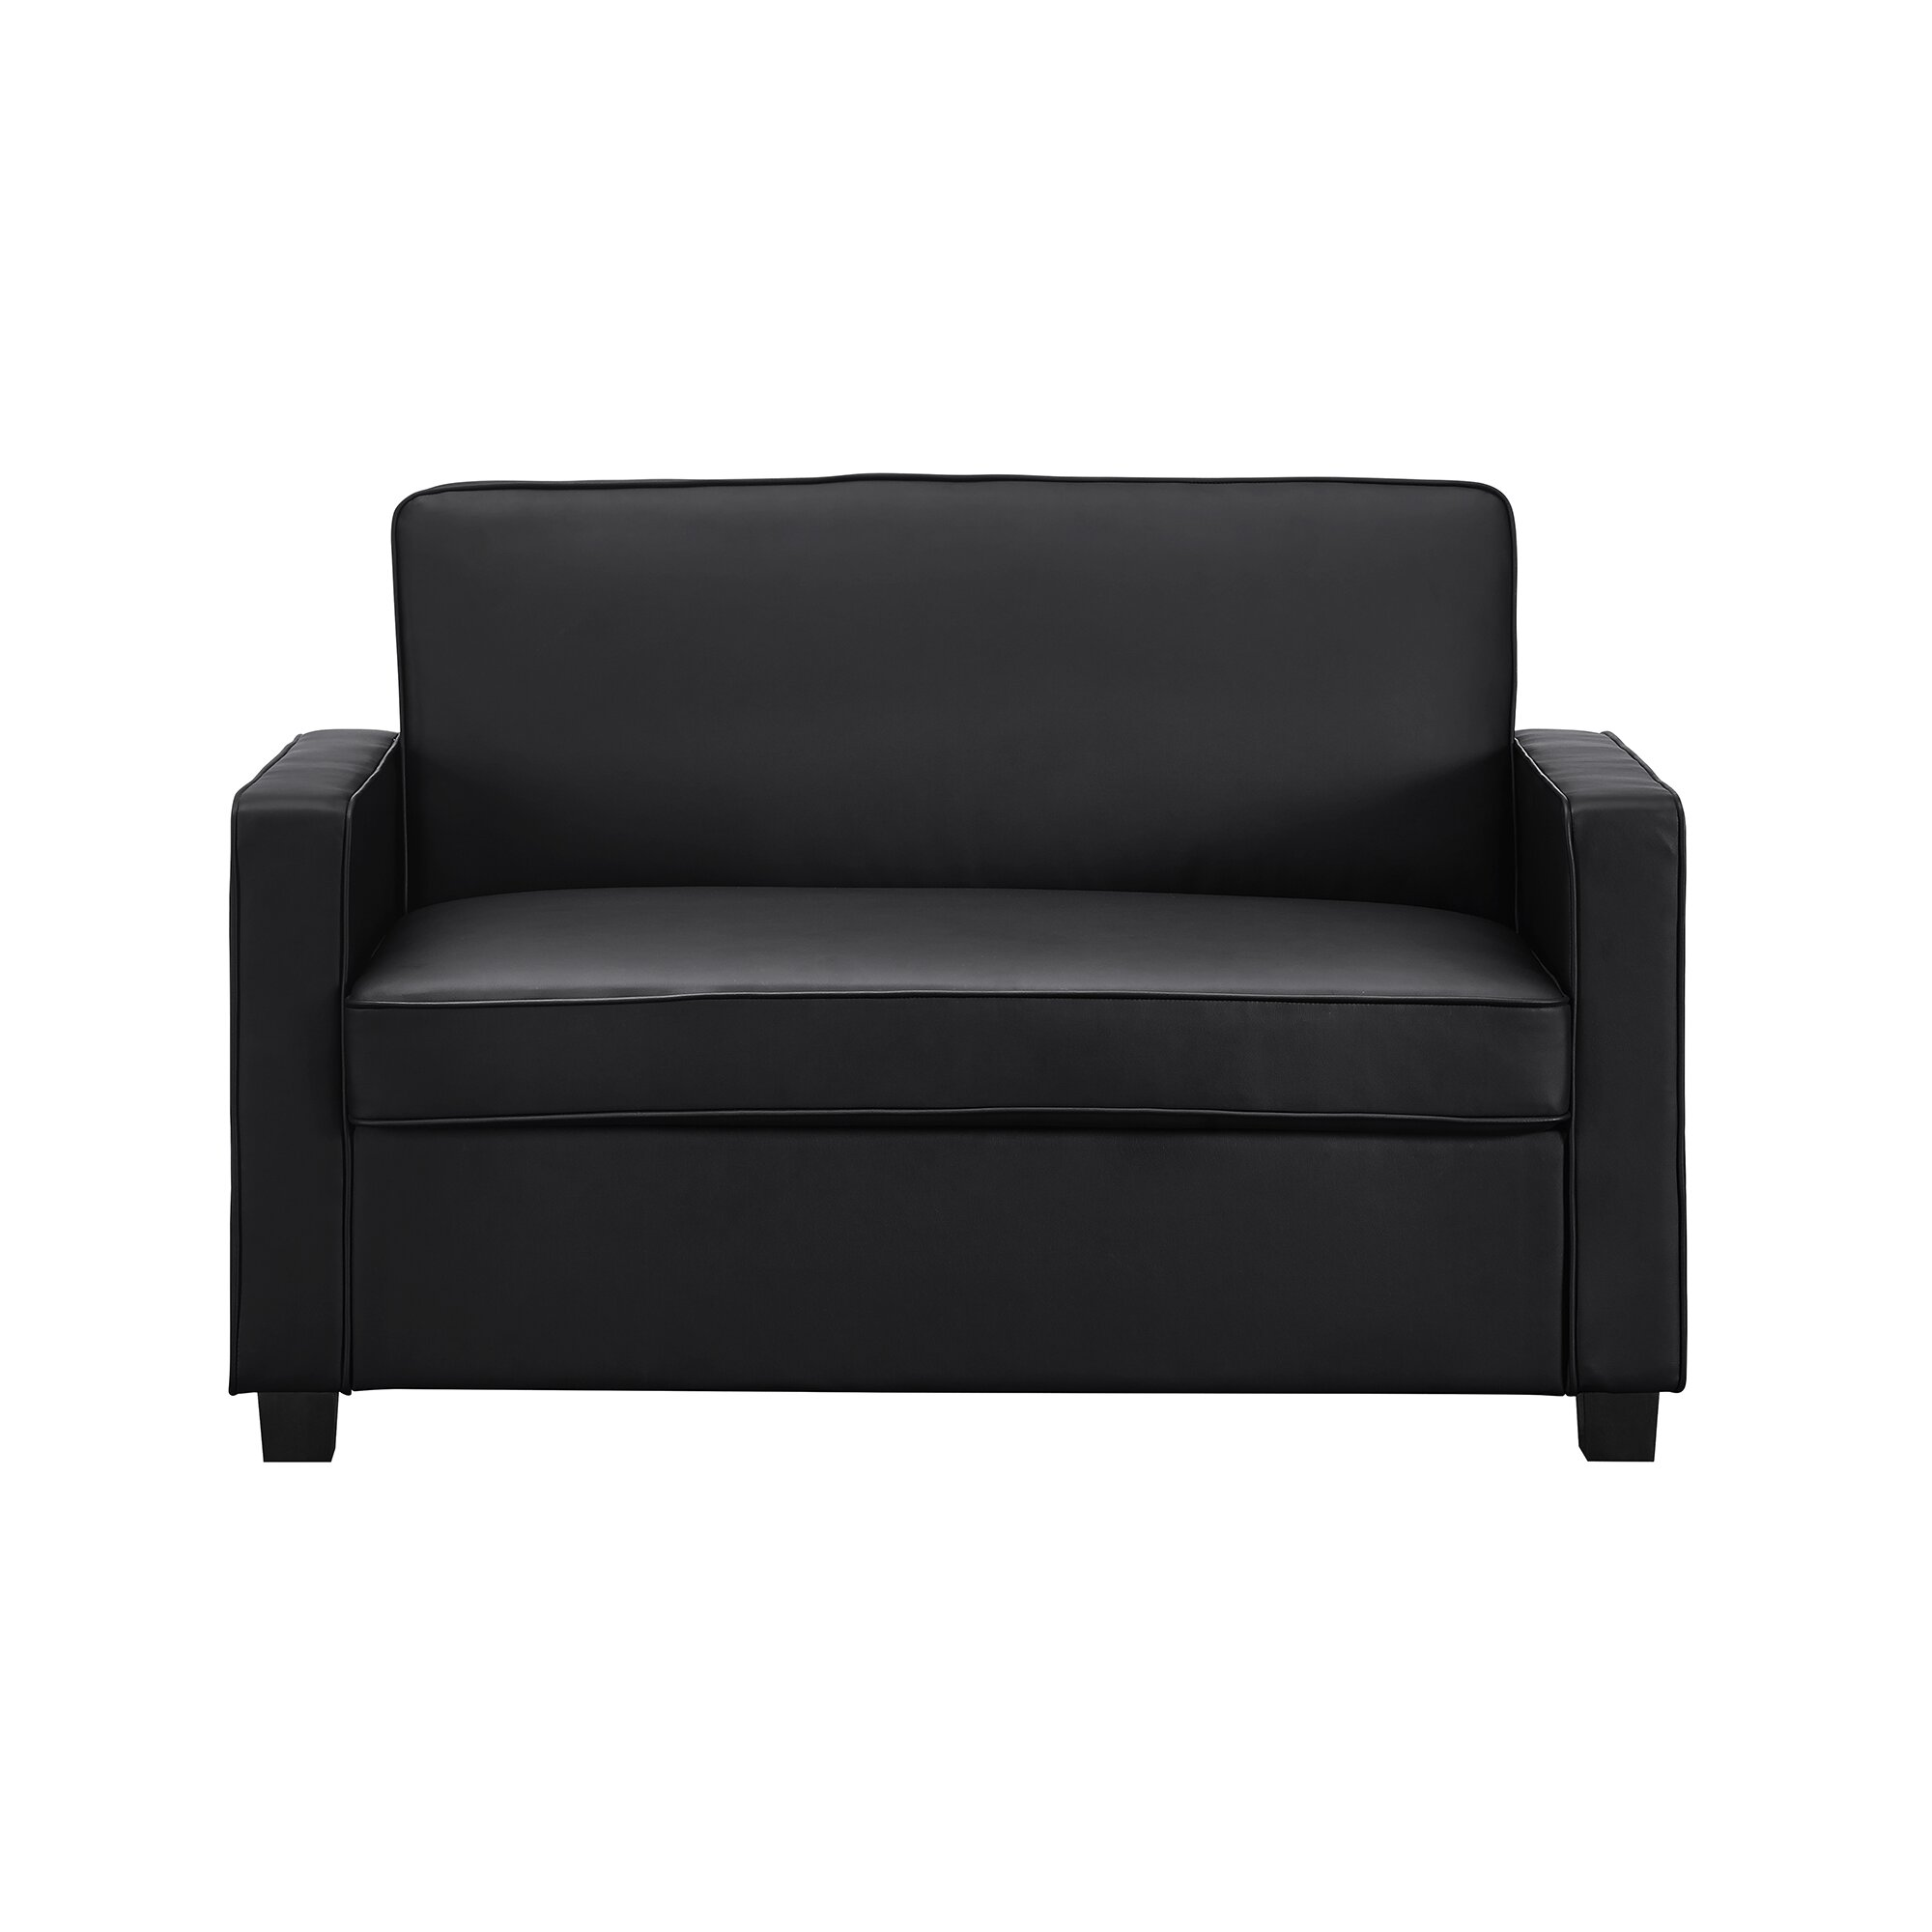 Cabell Twin Sleeper Sofa & Reviews